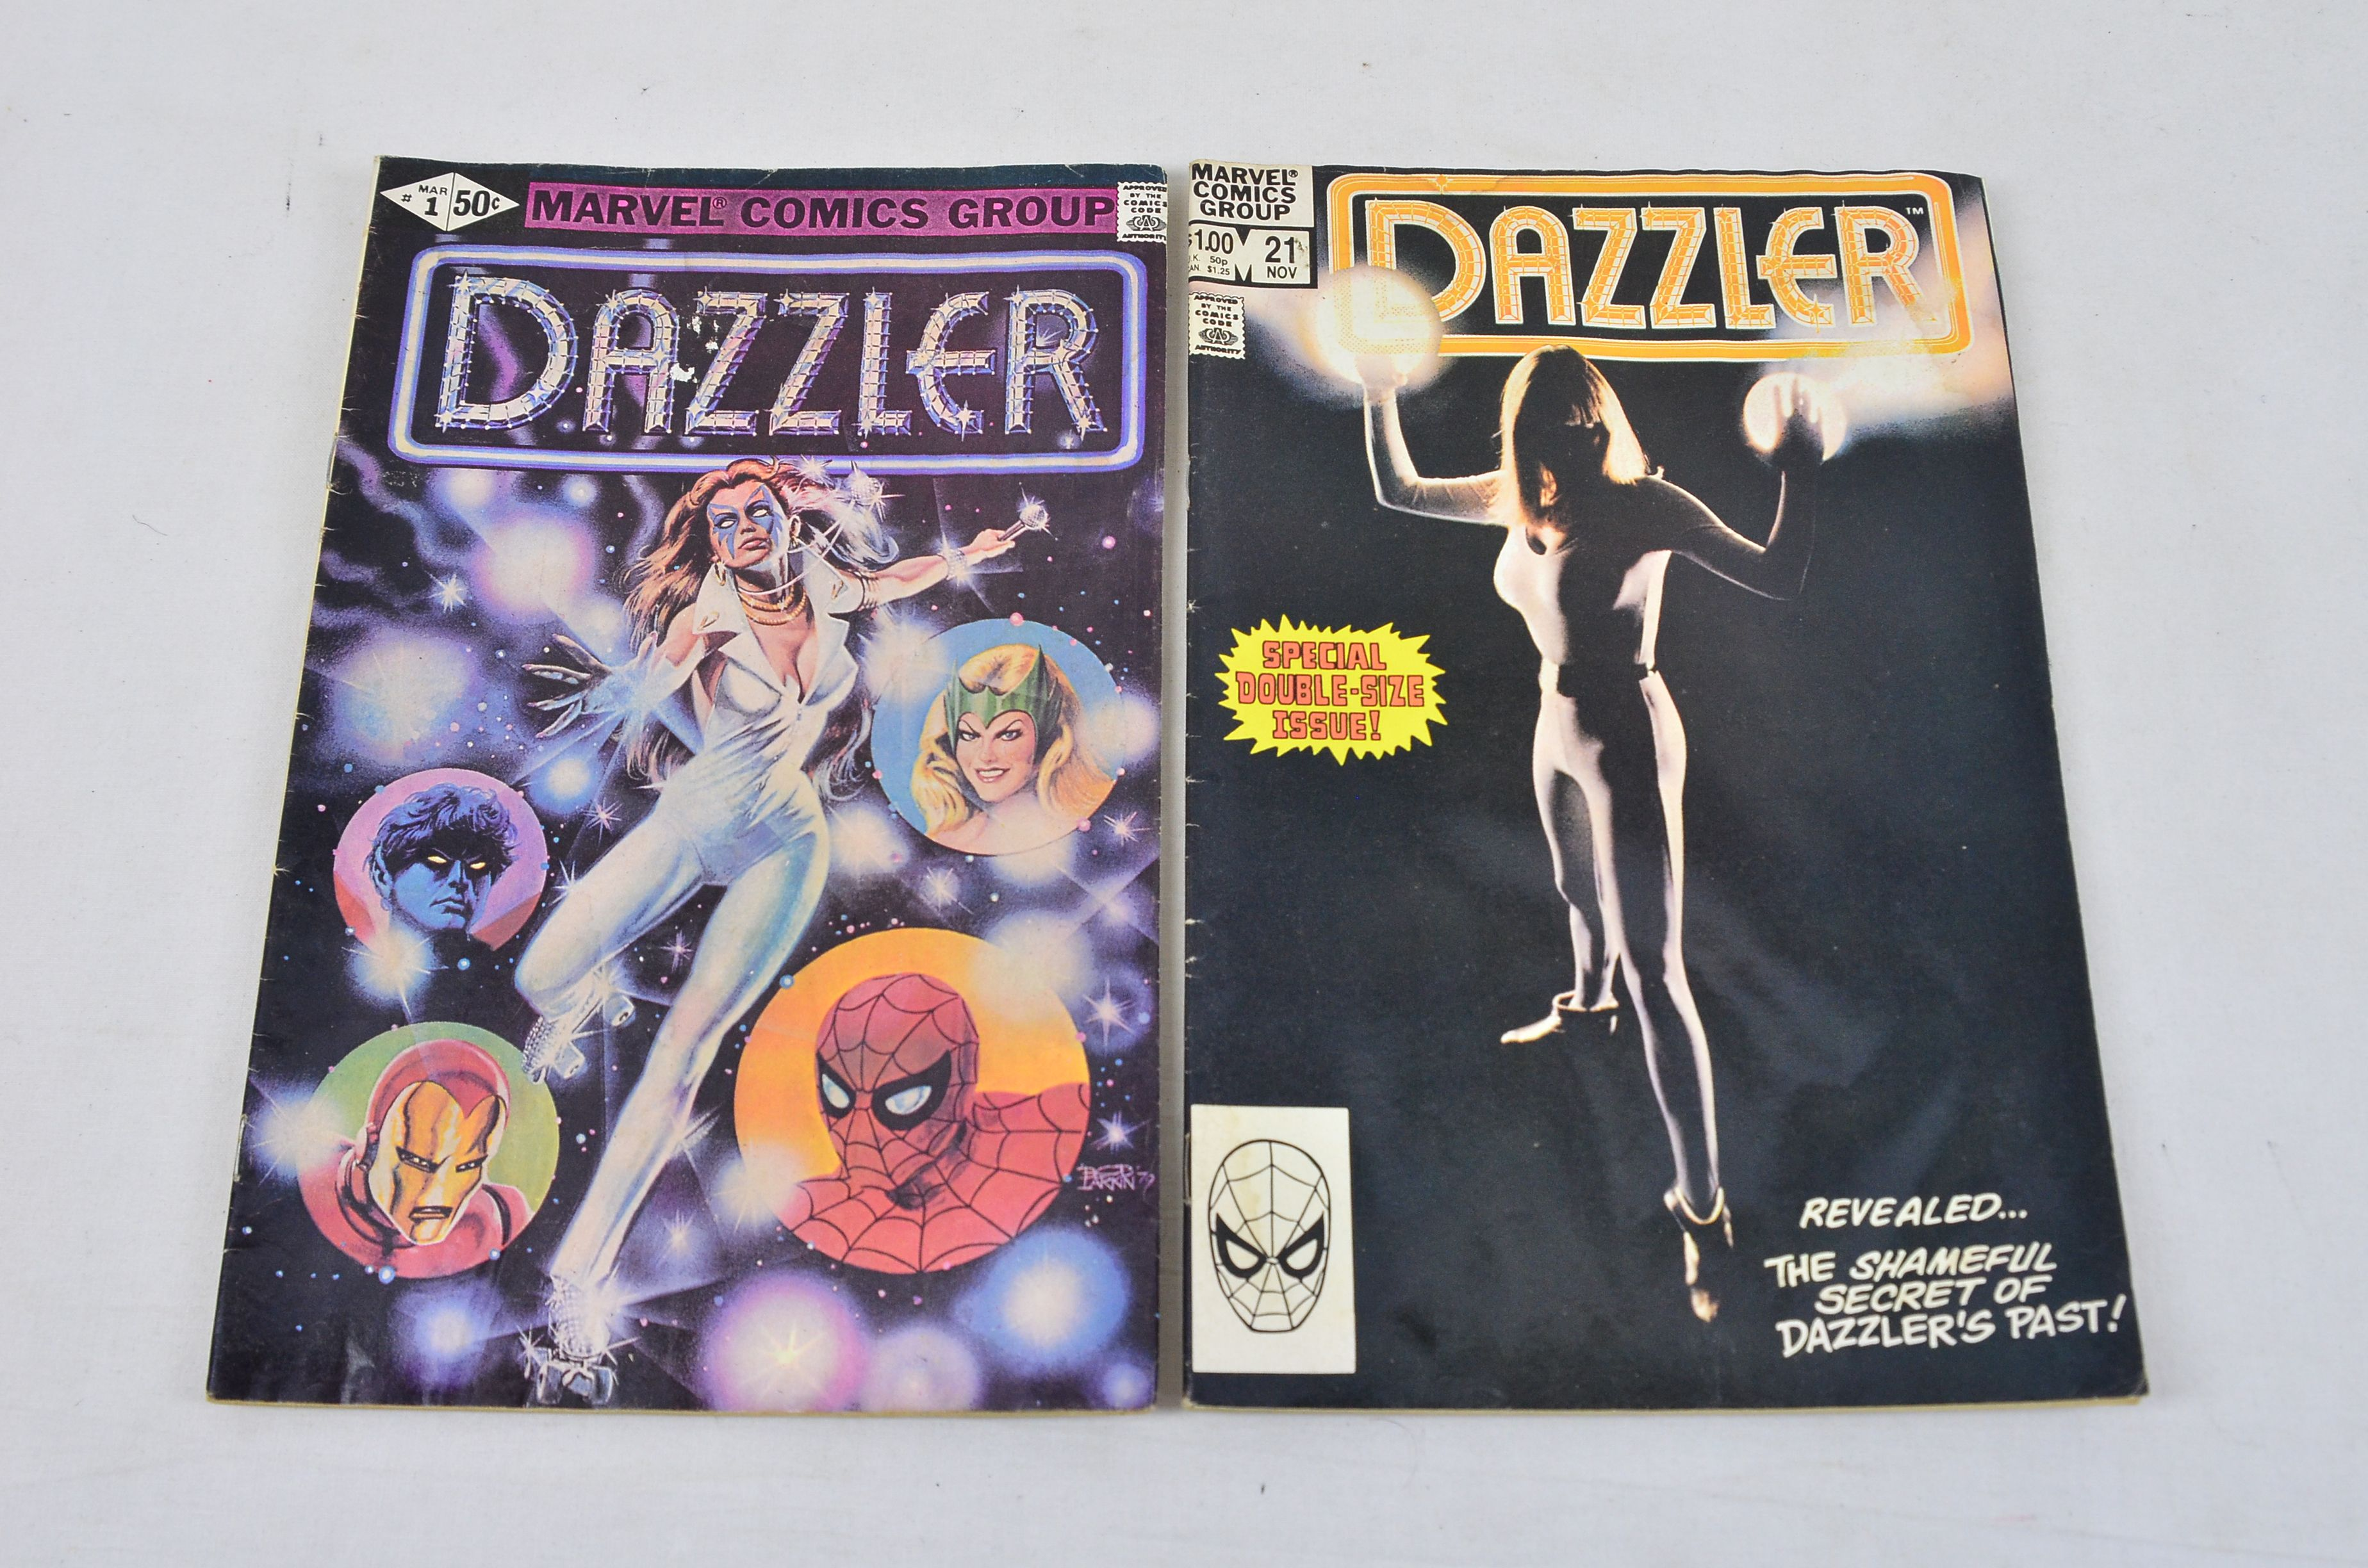 Vintage Marvel Comics Group Dazzler Collectable Comic Thumbnail 1